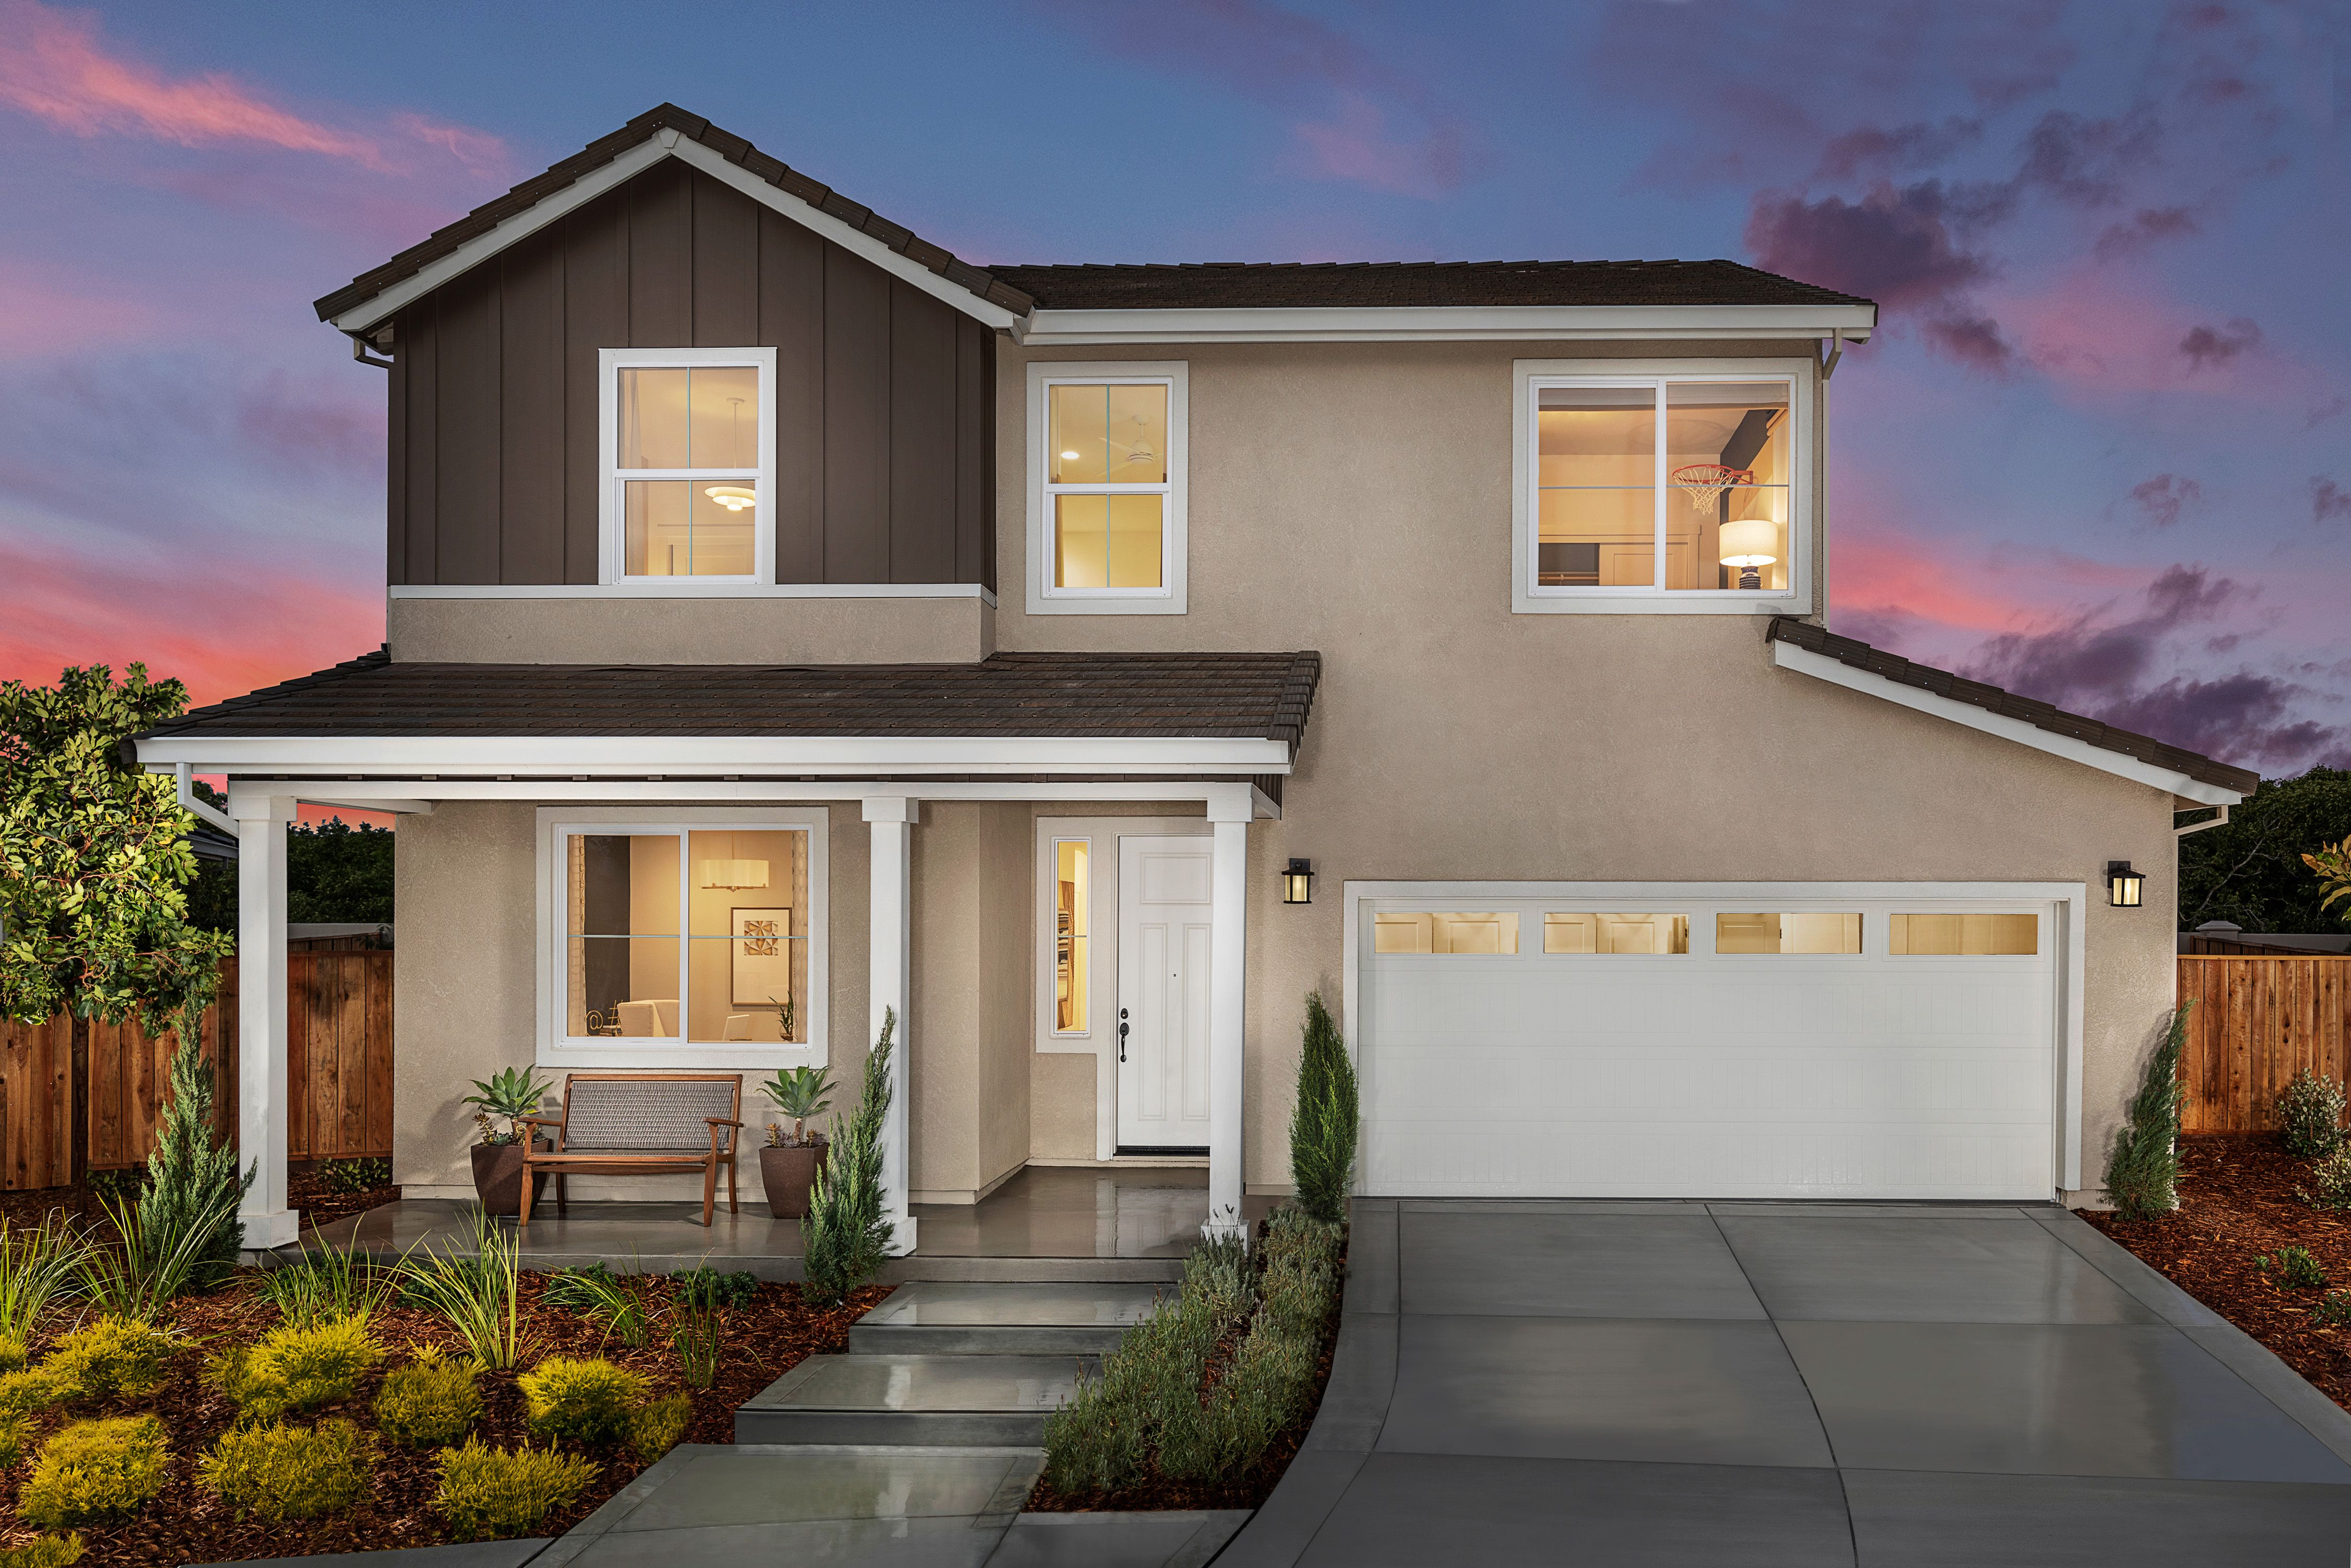 Exterior featured in the Mayfair Residence 2 By Kiper Homes in Santa Cruz, CA